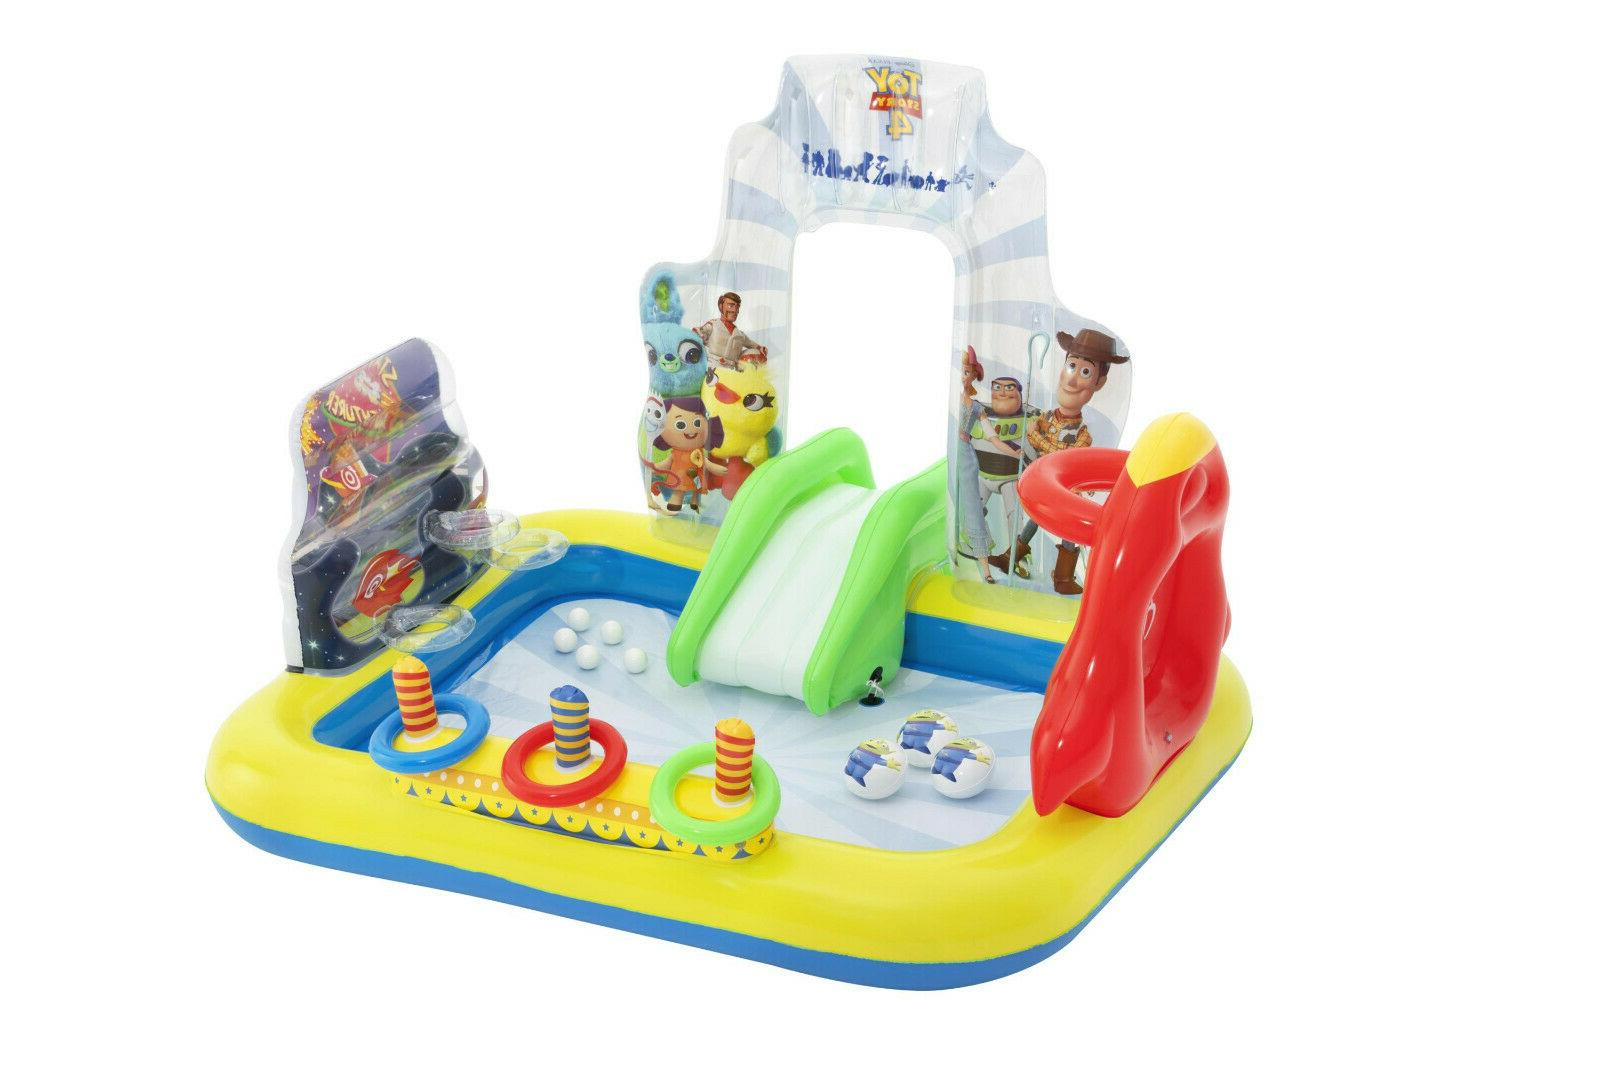 Disney Toy Story 4 Inflatable Play Pool Center